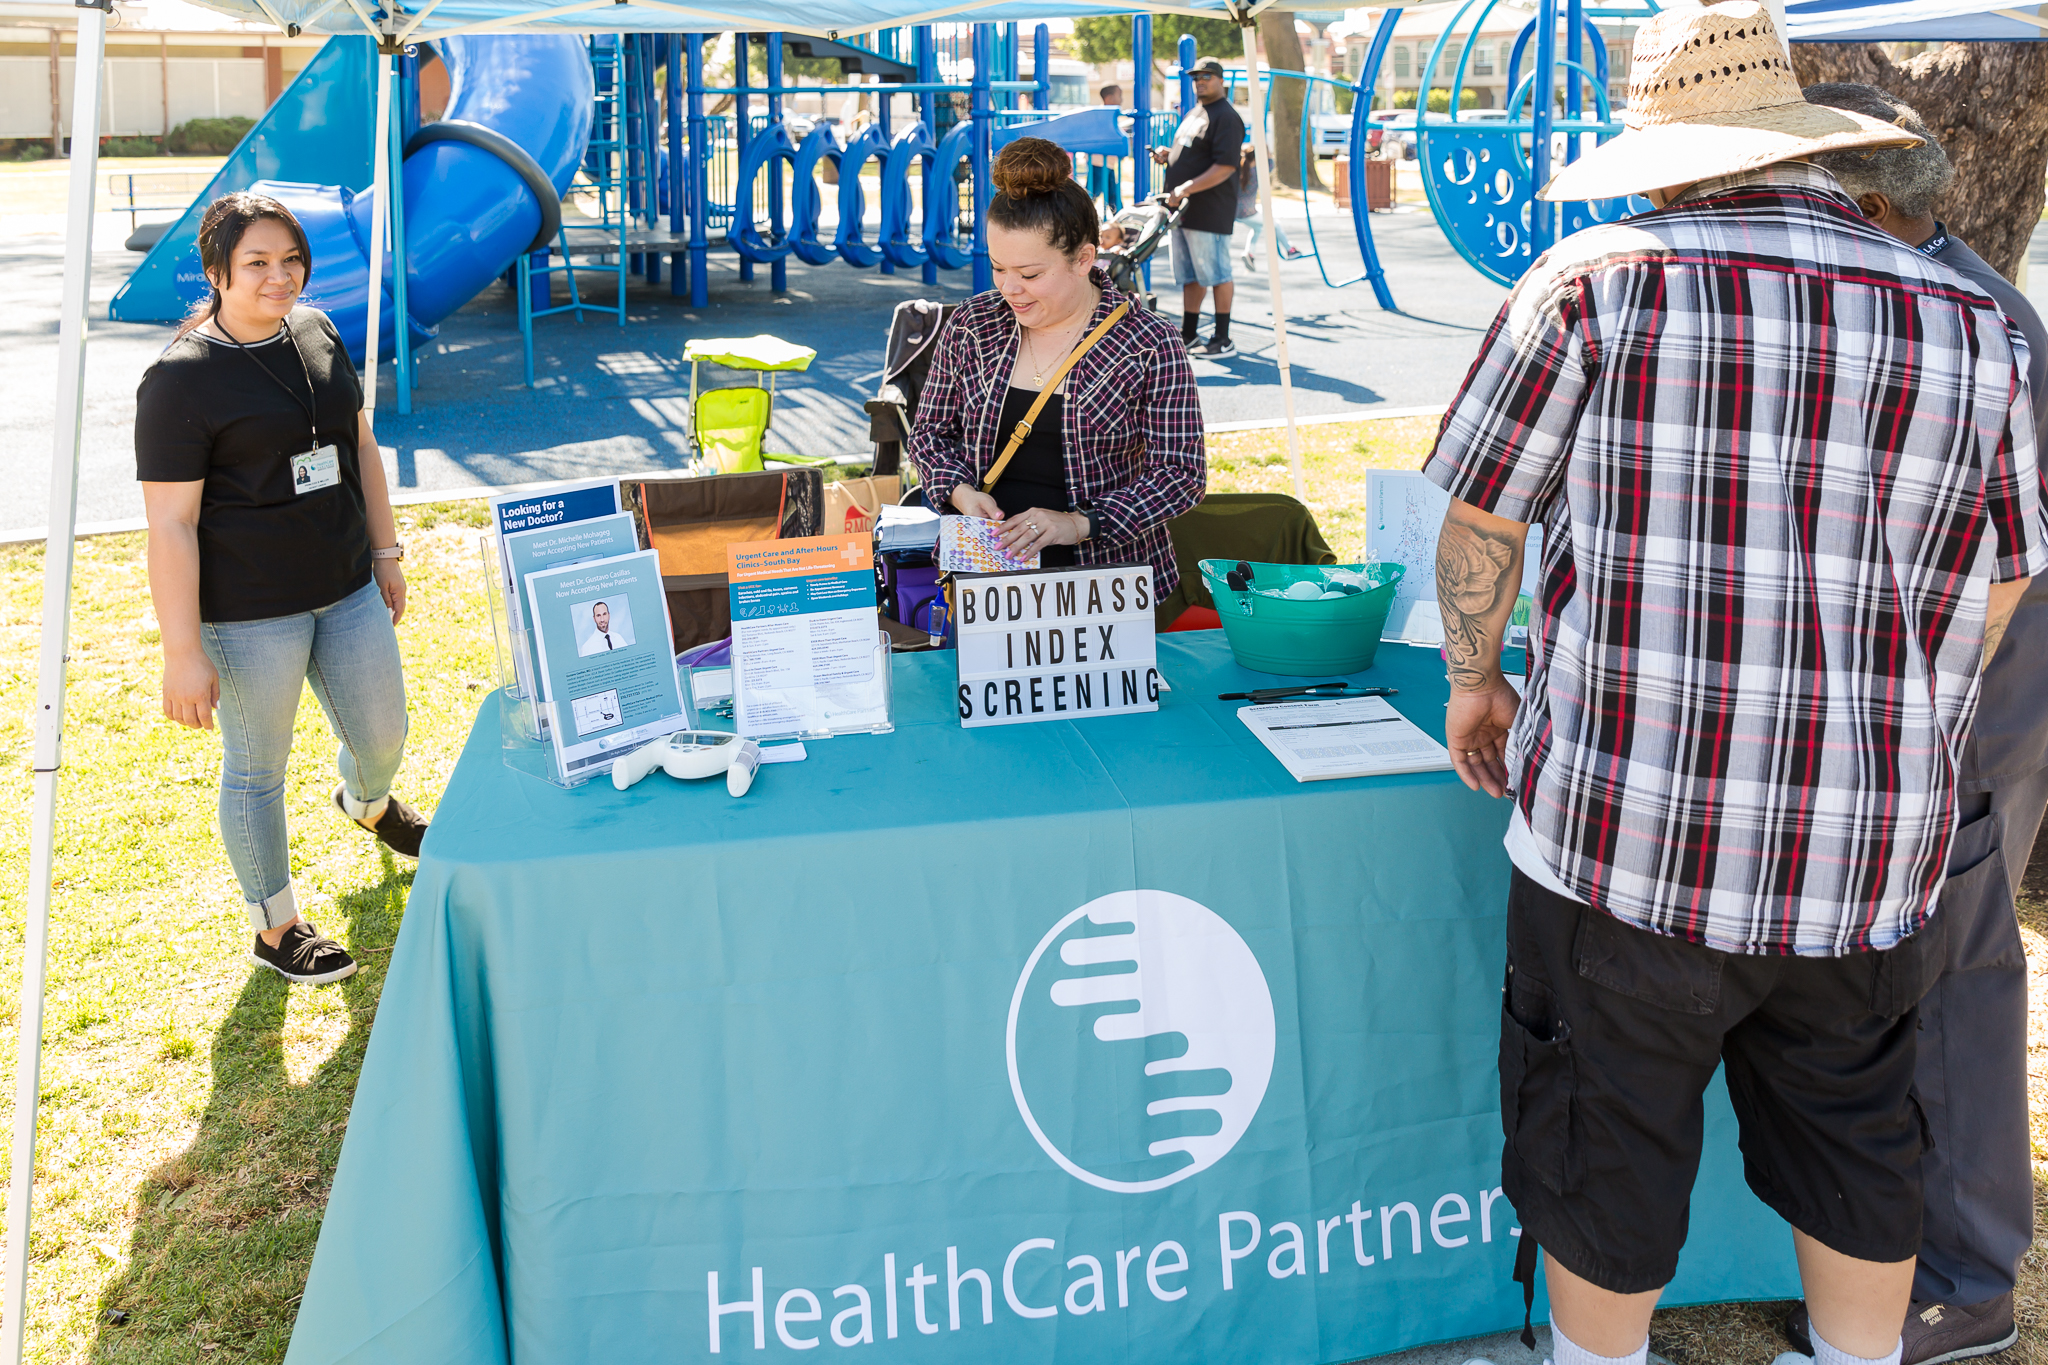 Health Care Partners booth